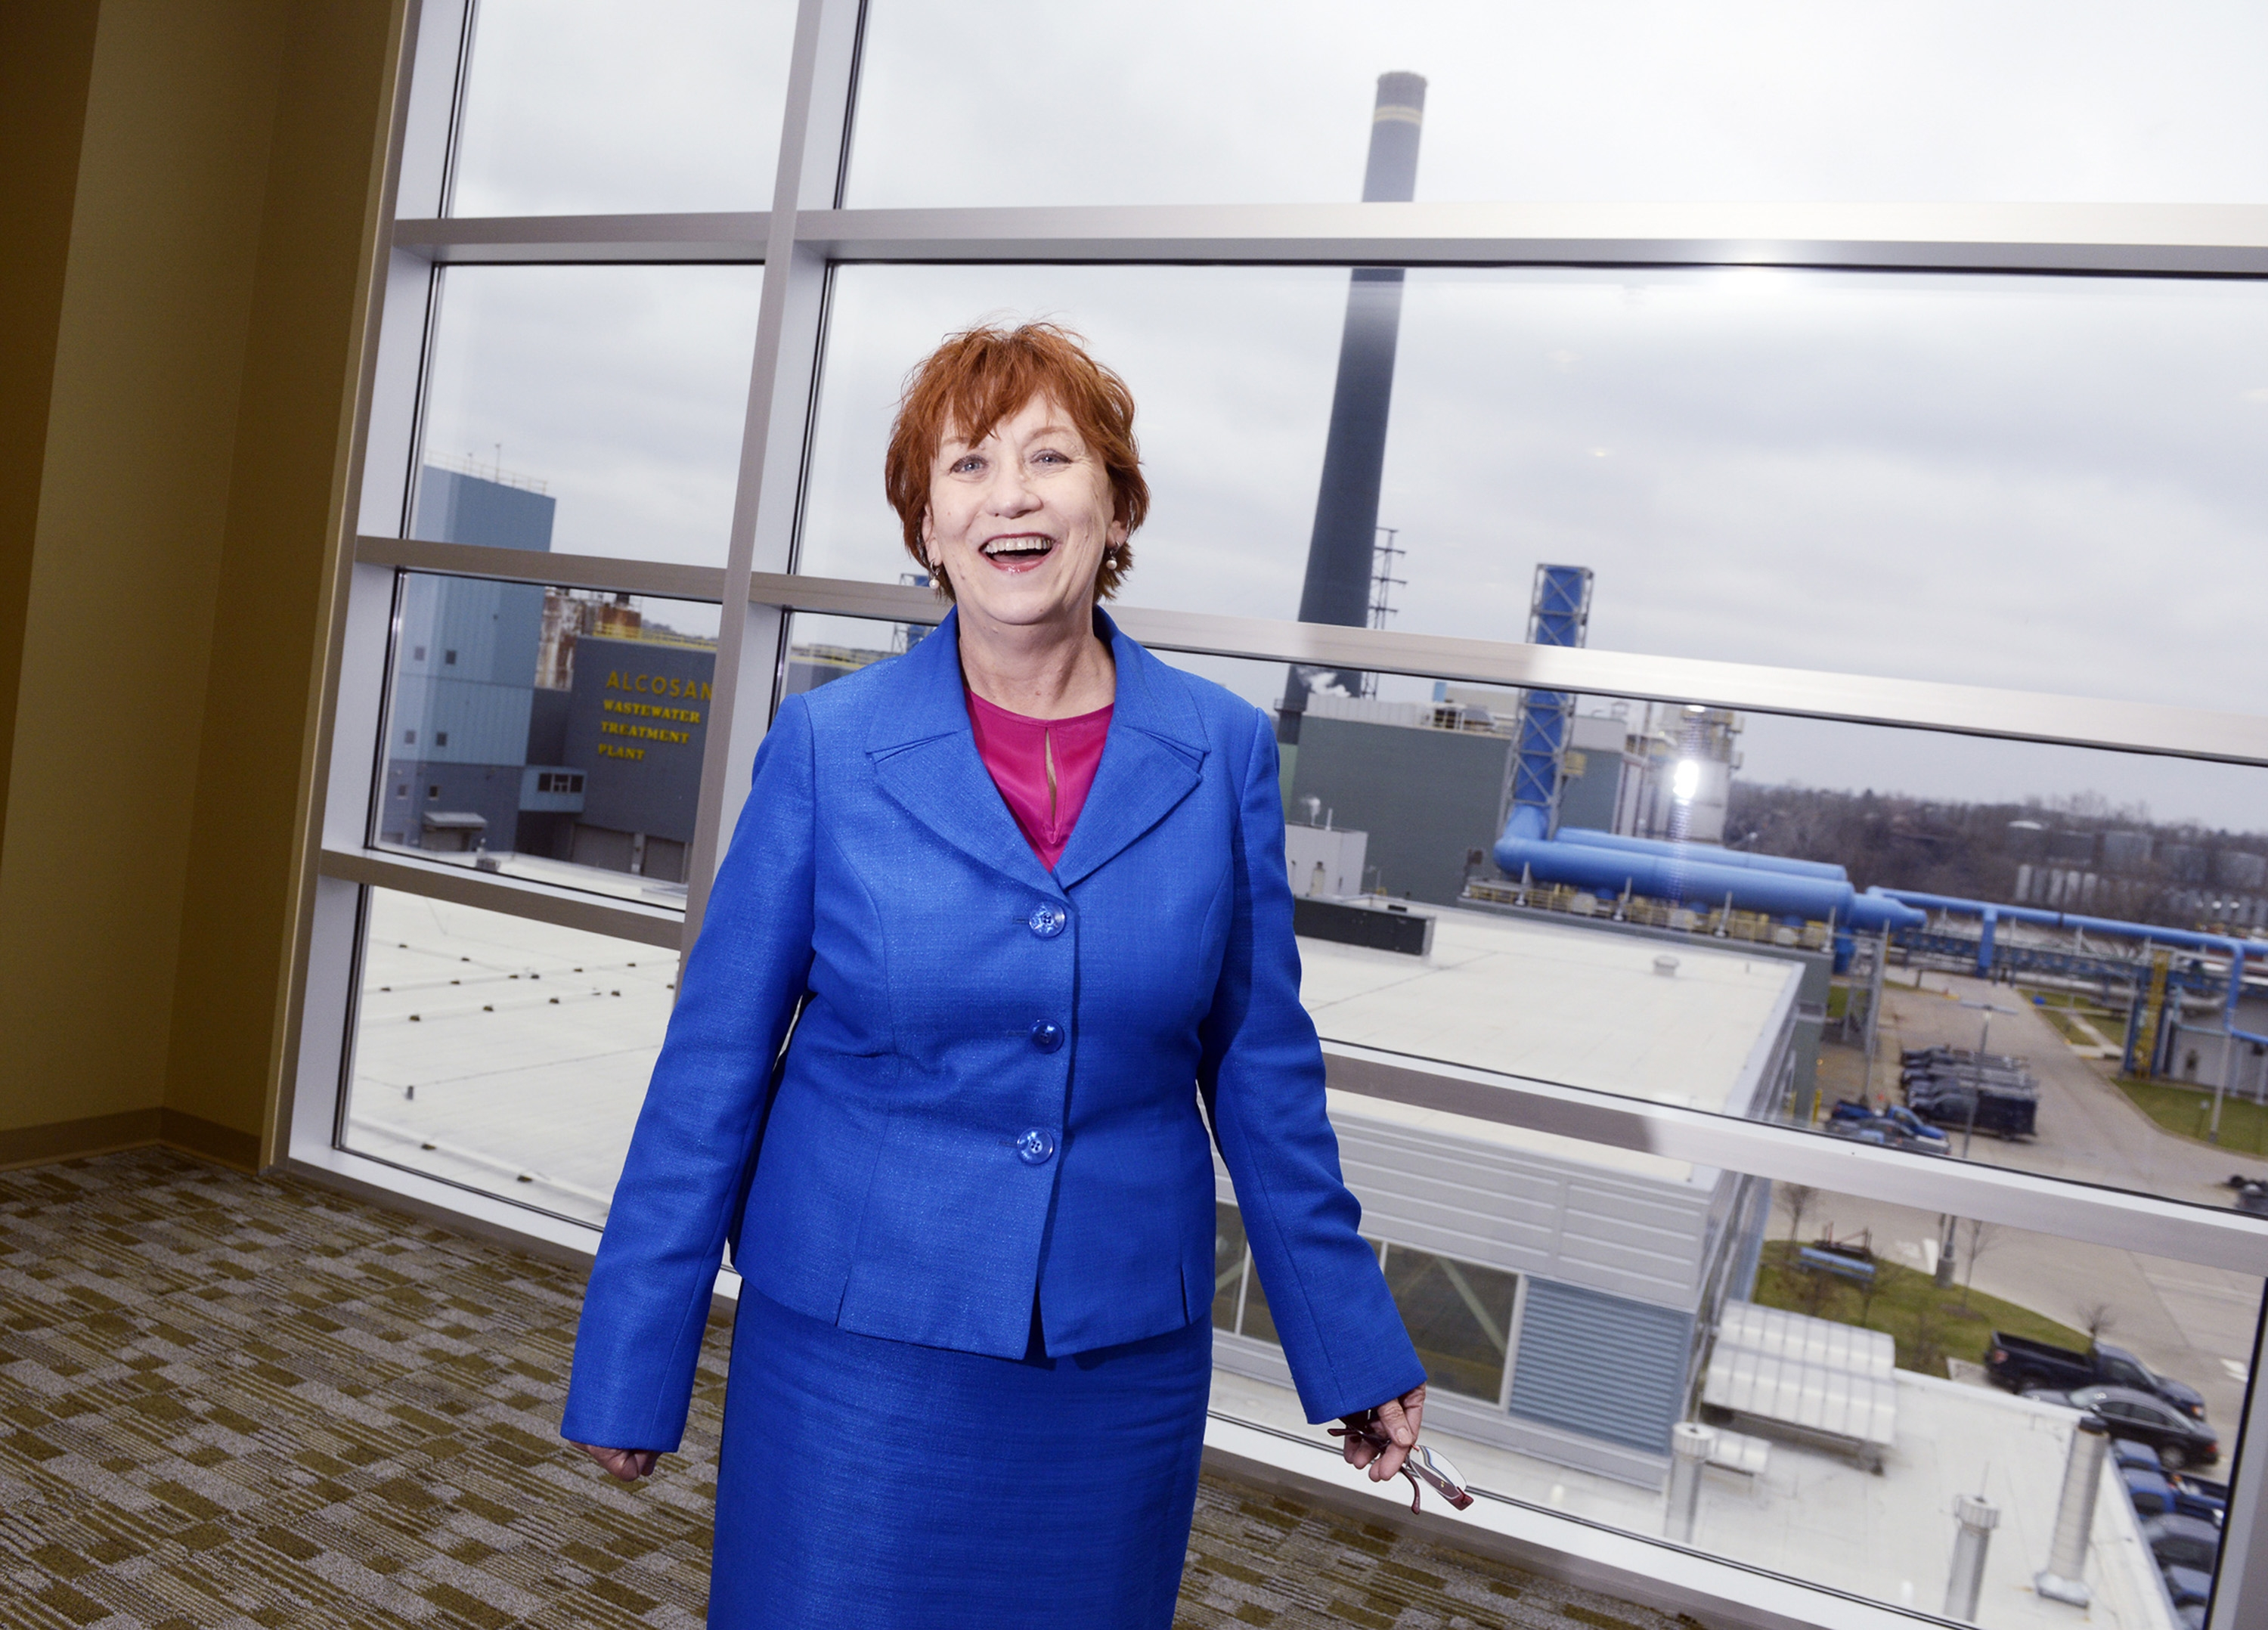 Jeanne Clark, public information officer for Alcosan (Allegheny County Sanitary Authority), takes a break in her office in Pittsburgh. Clark started her job at Alcosan on her 65th birthday, working past normal retirement age. The wastewater treatment plant is in the background.